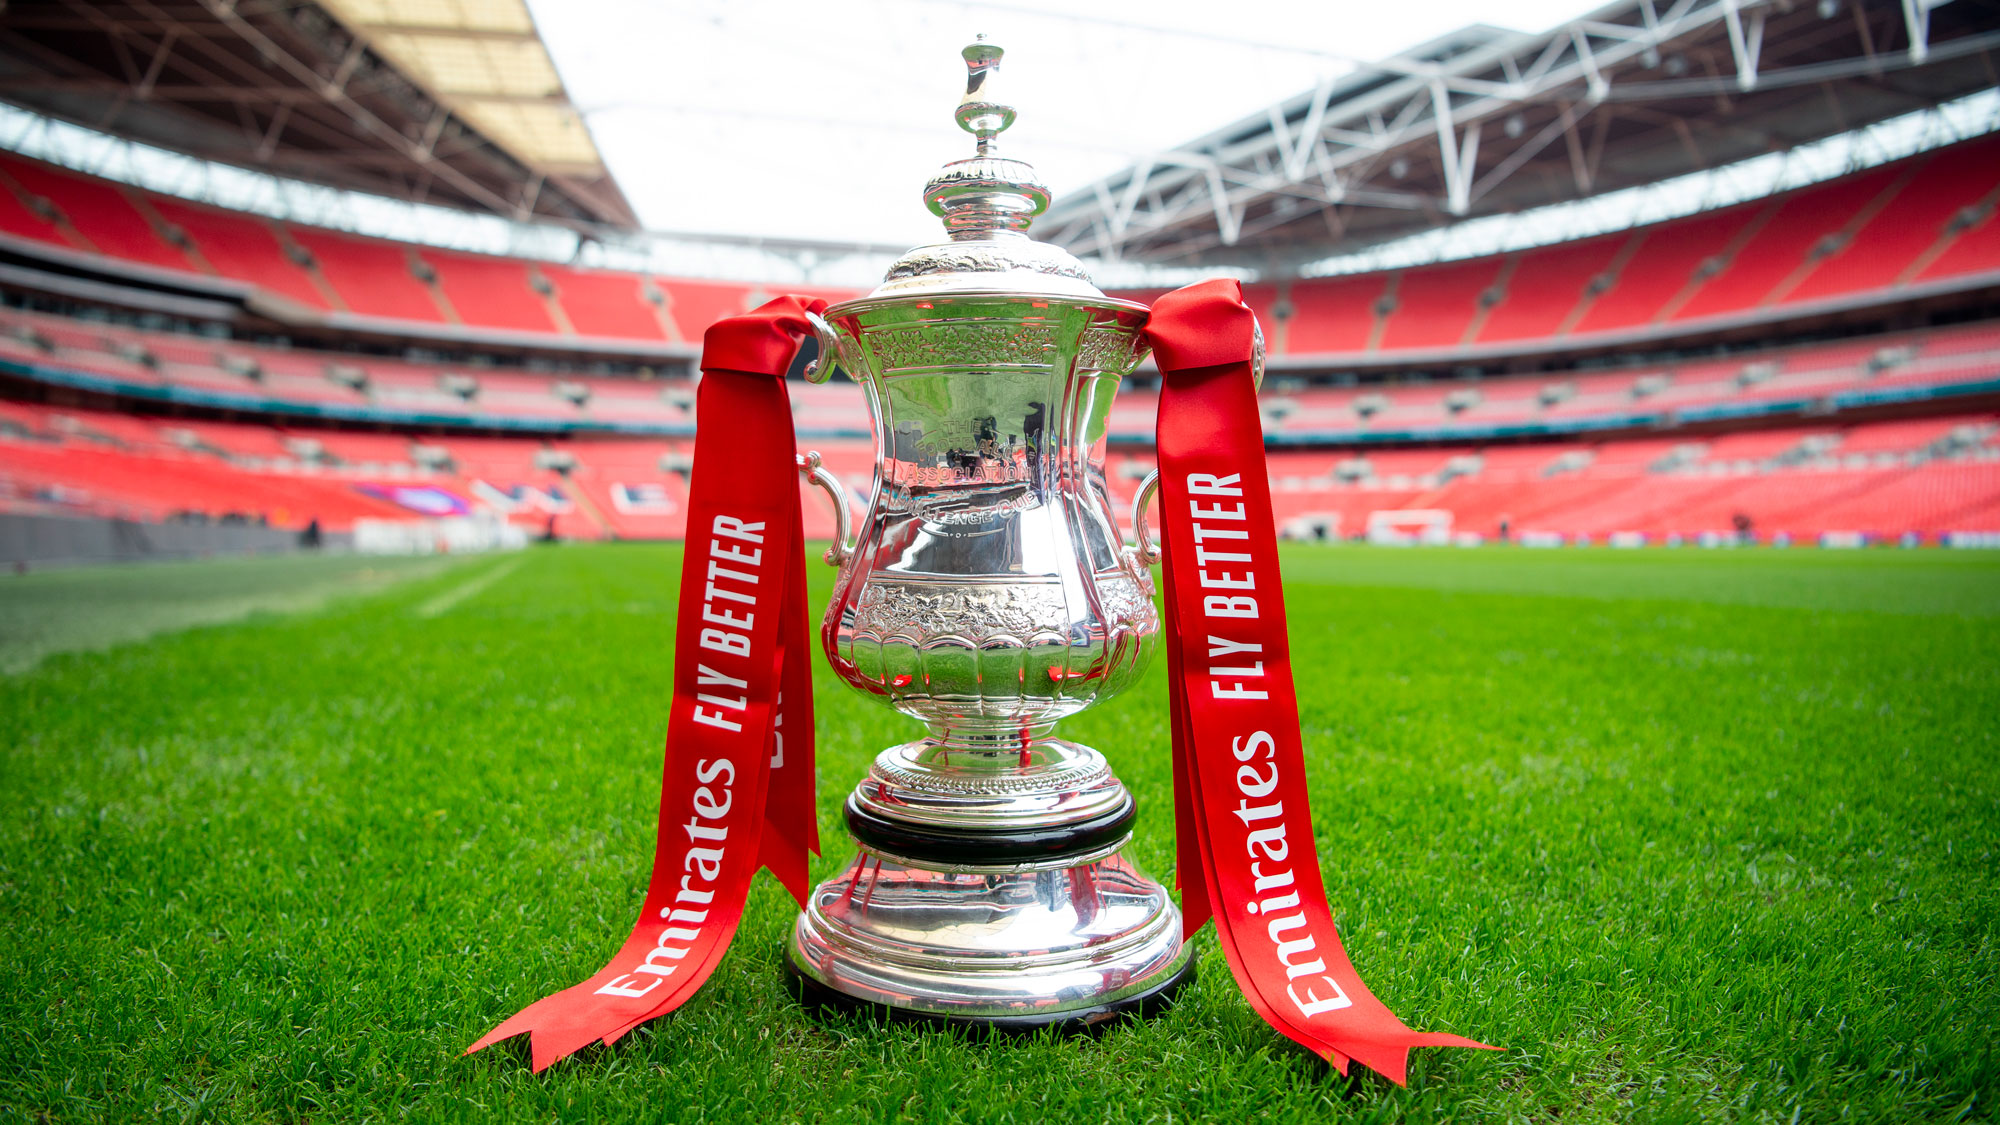 FA to stream two FA Cup matches on Facebook – Digital TV Europe